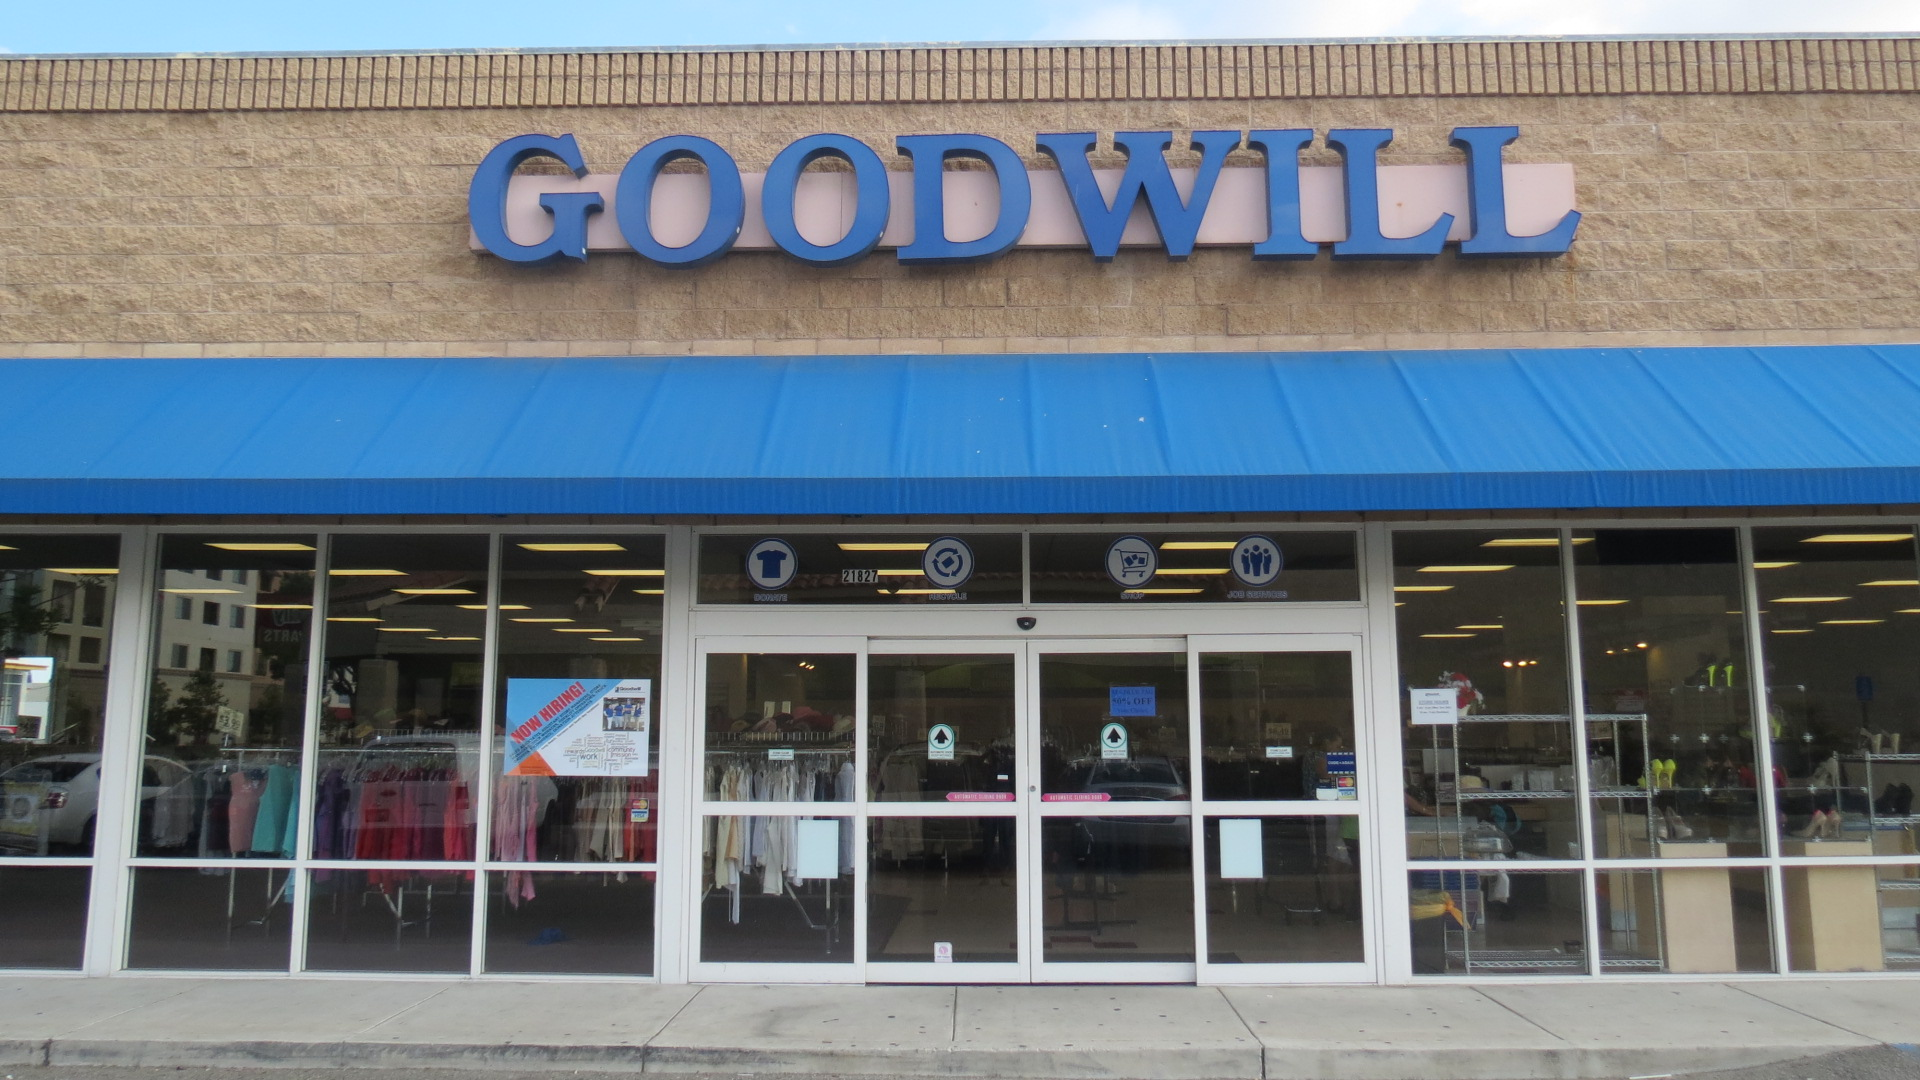 Carson Goodwill Retail Store & Donation Center